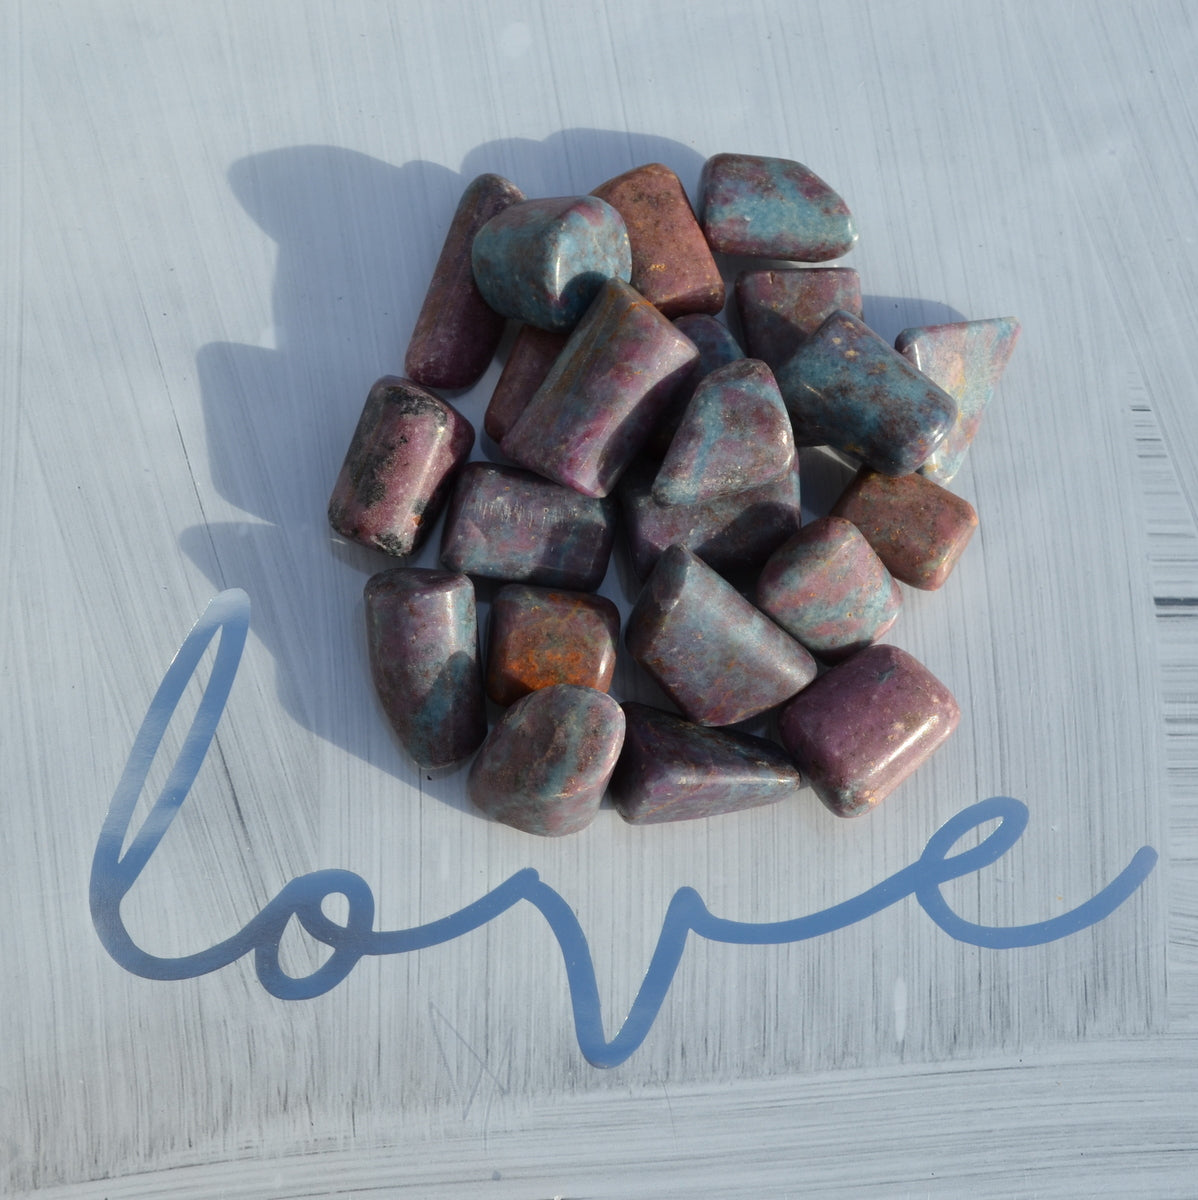 Ruby in Kyanite Tumbles - Protection Balance Nurturing Passion - Shop Now at Illiom Crystals - Now with Afterpay